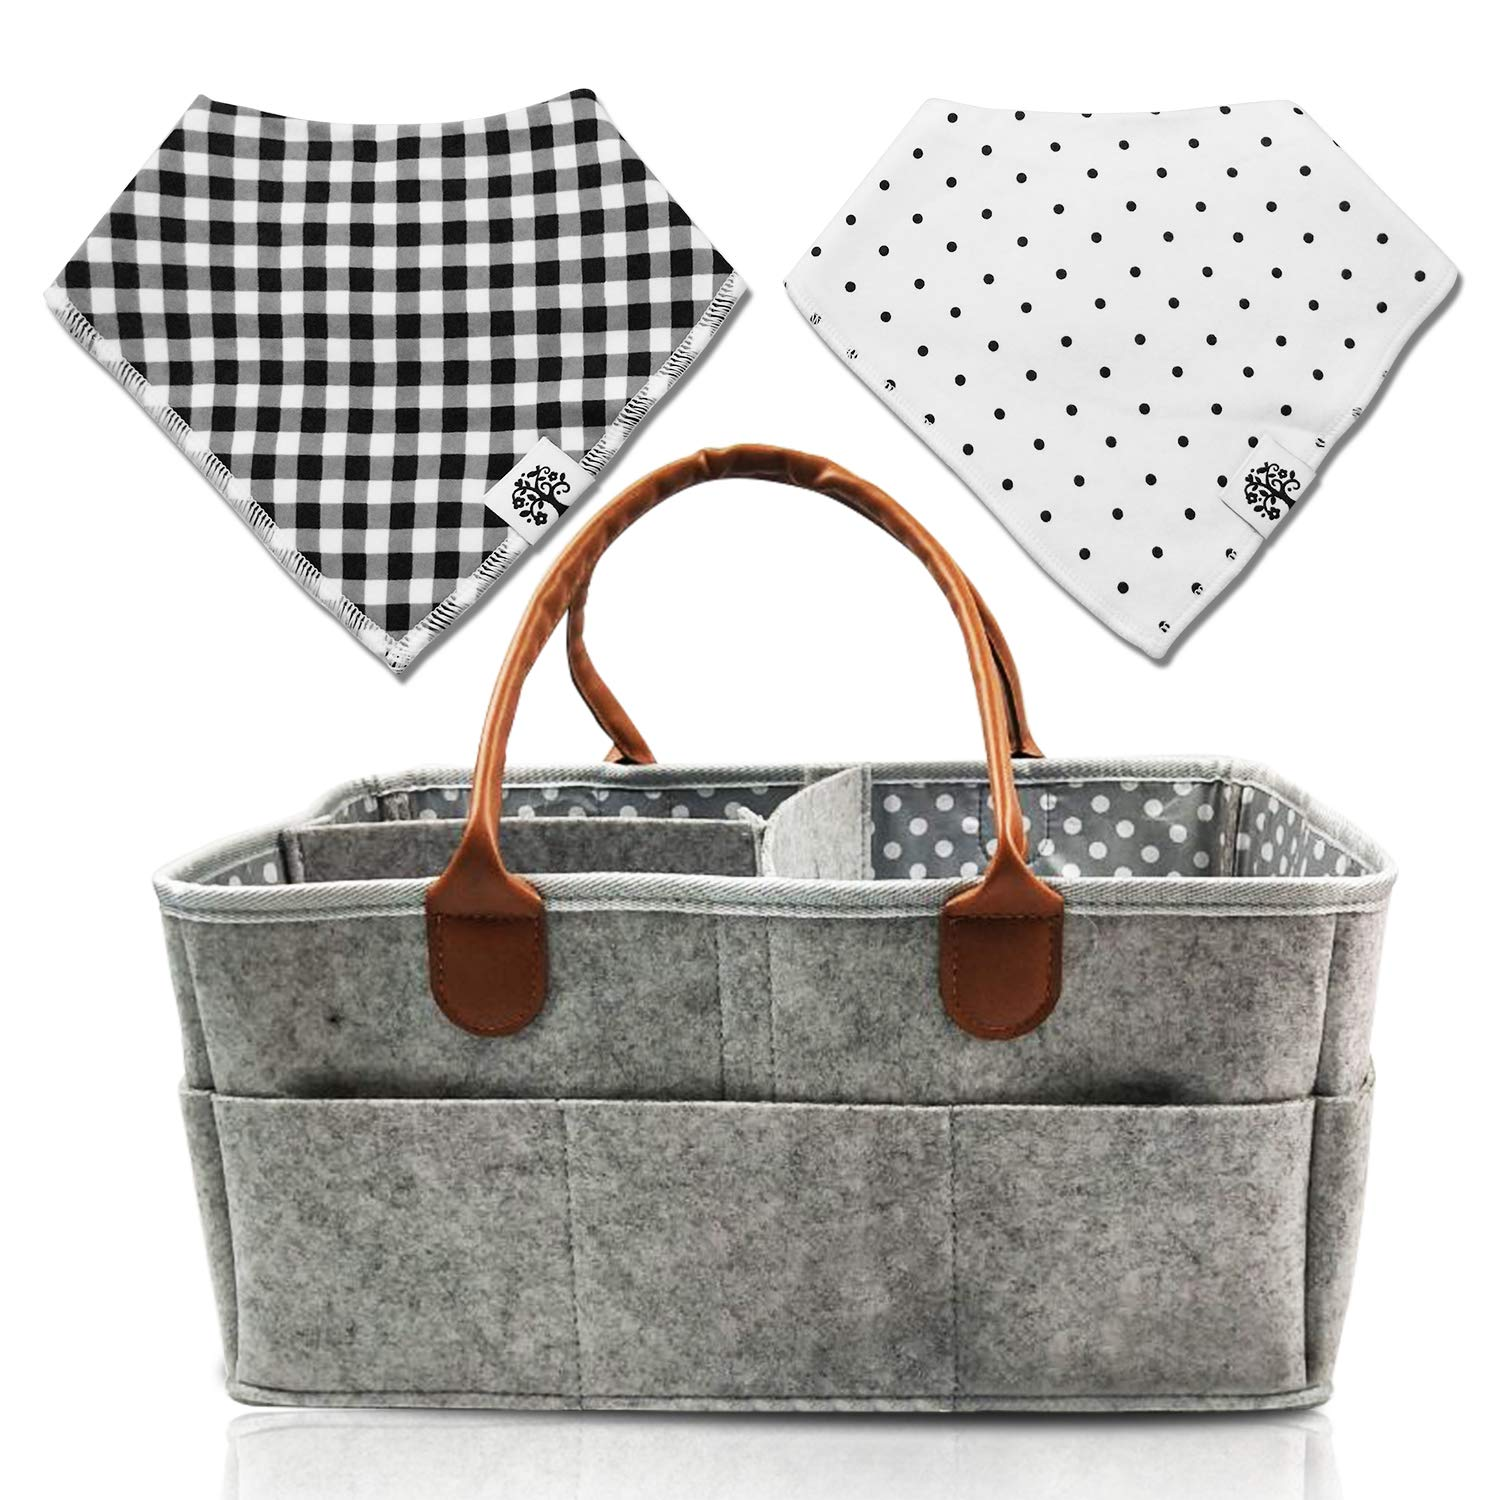 Baby Diaper Caddy | Nursery Diaper Tote Bag | Baby Shower Gift Basket | Large Portable Car Travel Organizer | Boy Girl Diaper Storage Big for Changing Table | Newborn Registry Must Haves by Sweet & Smitten